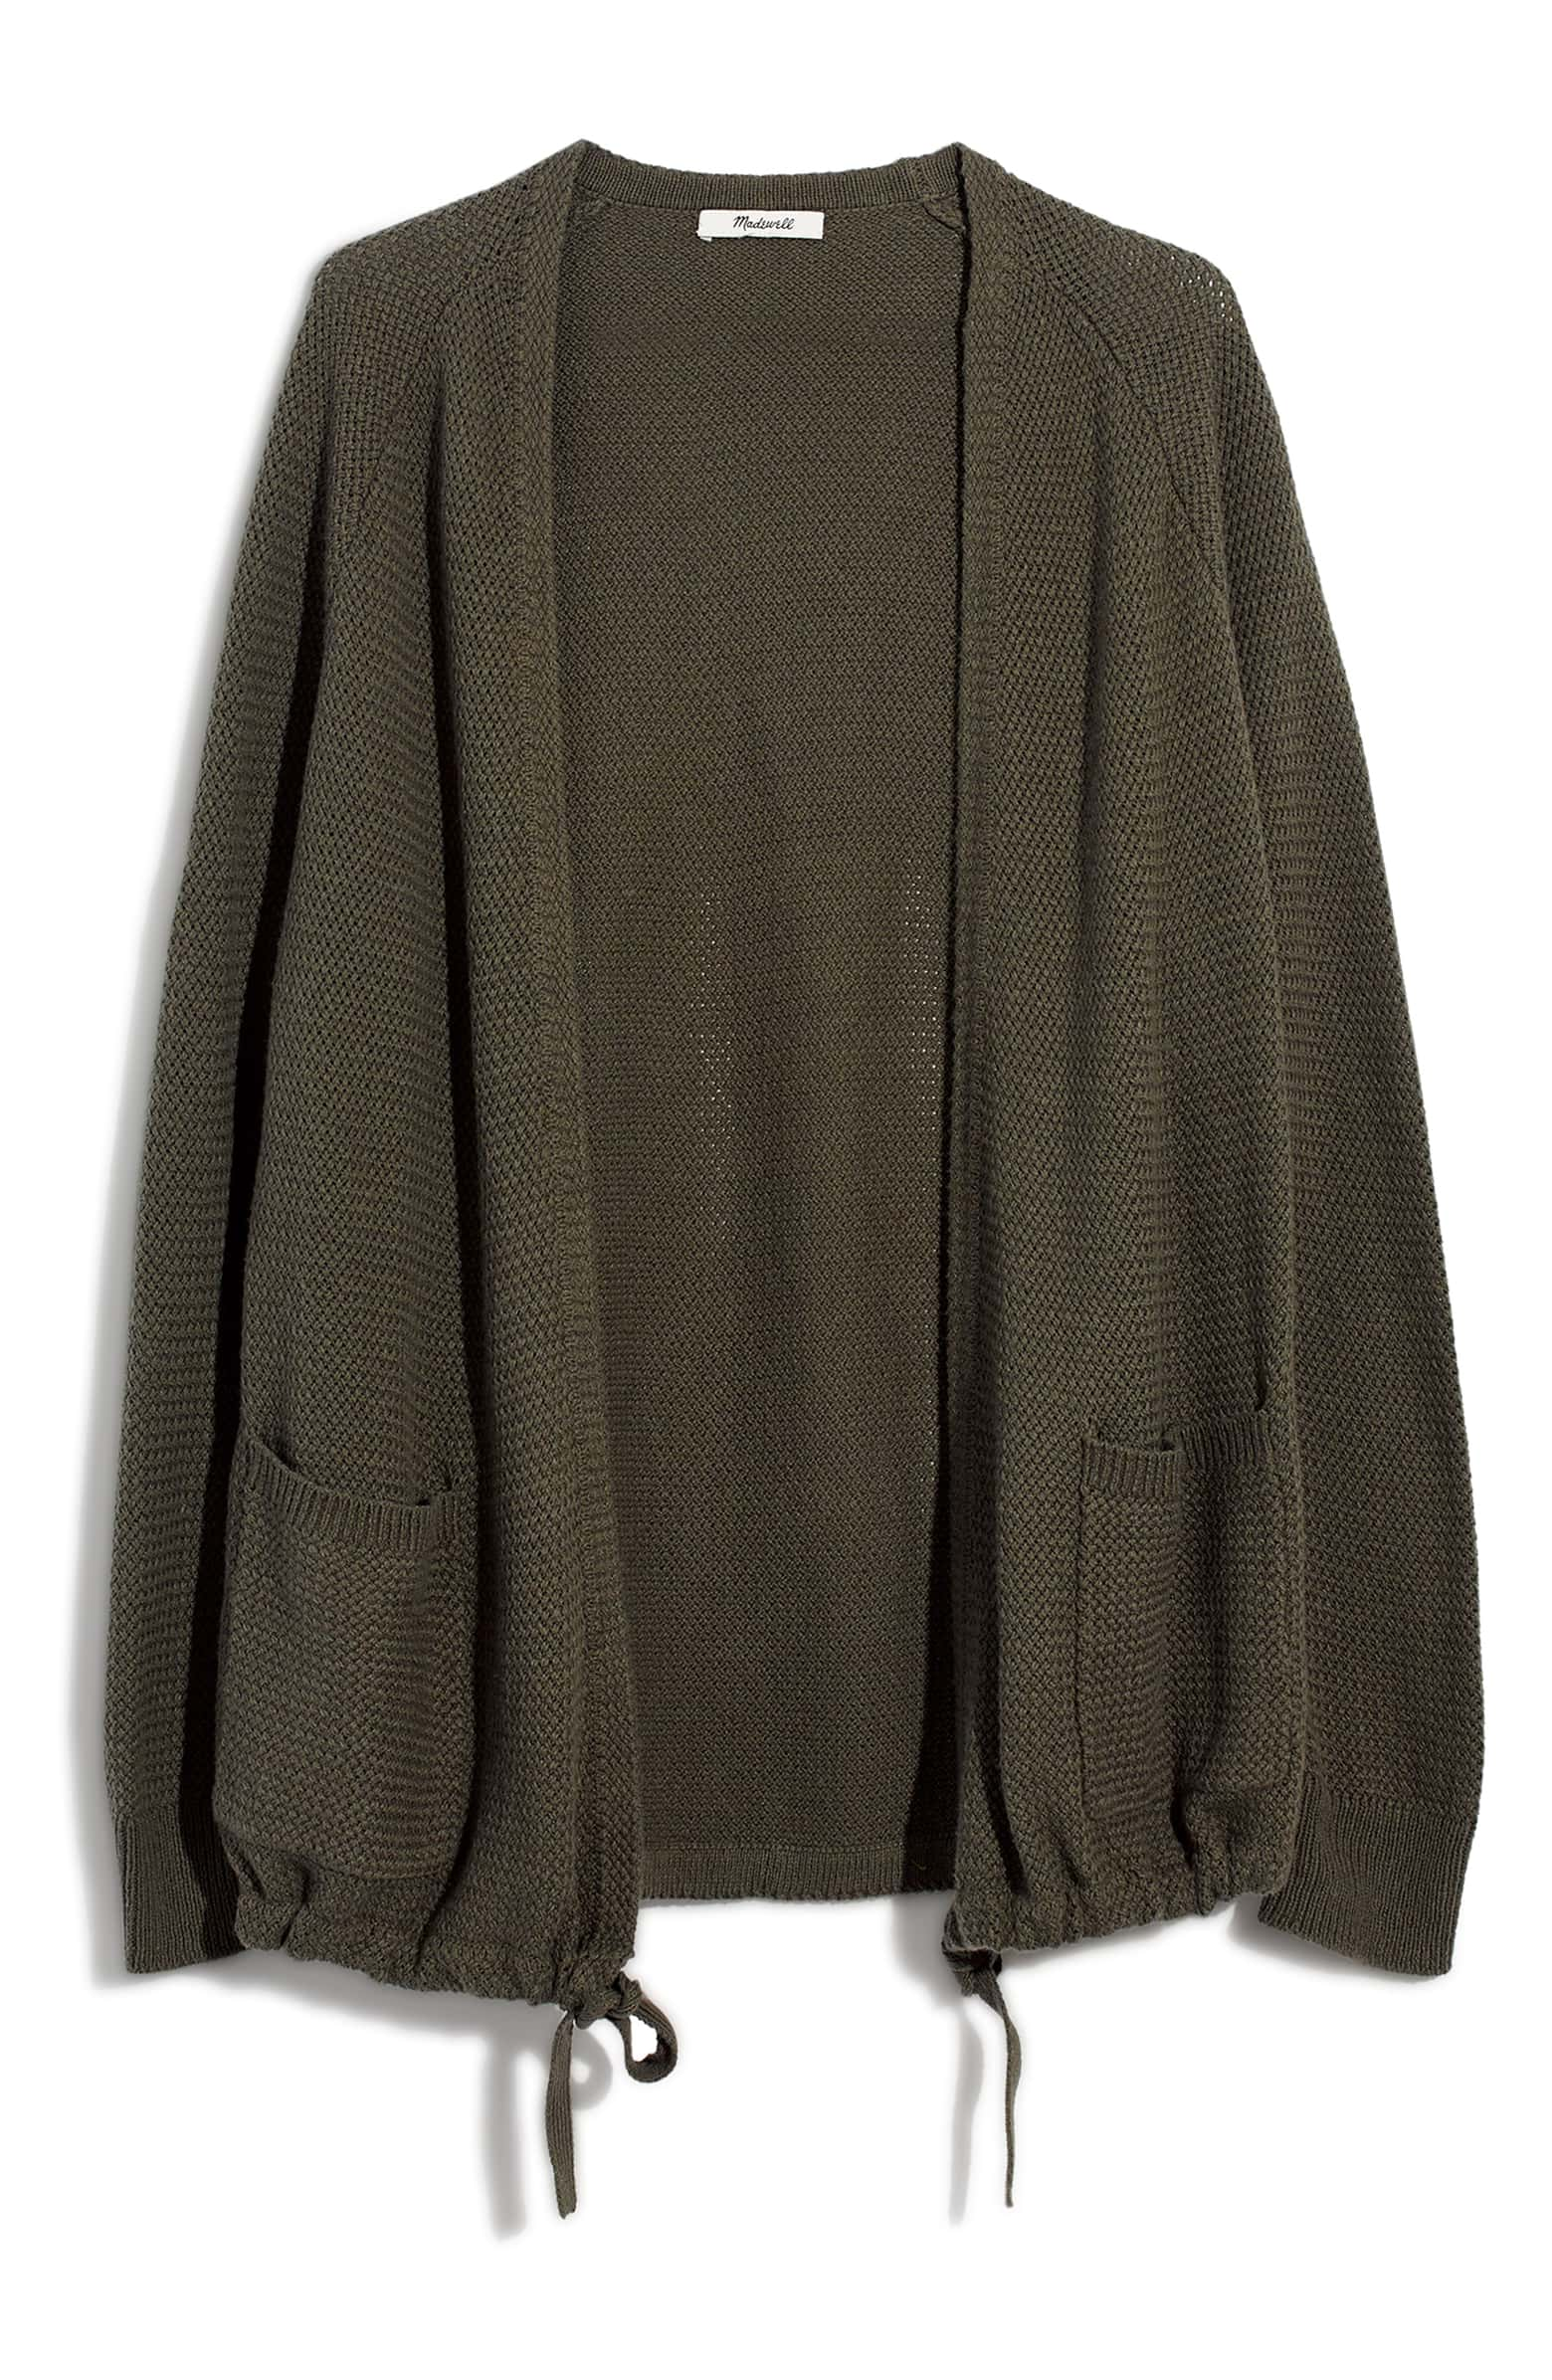 Olive colored Madewell cardigan